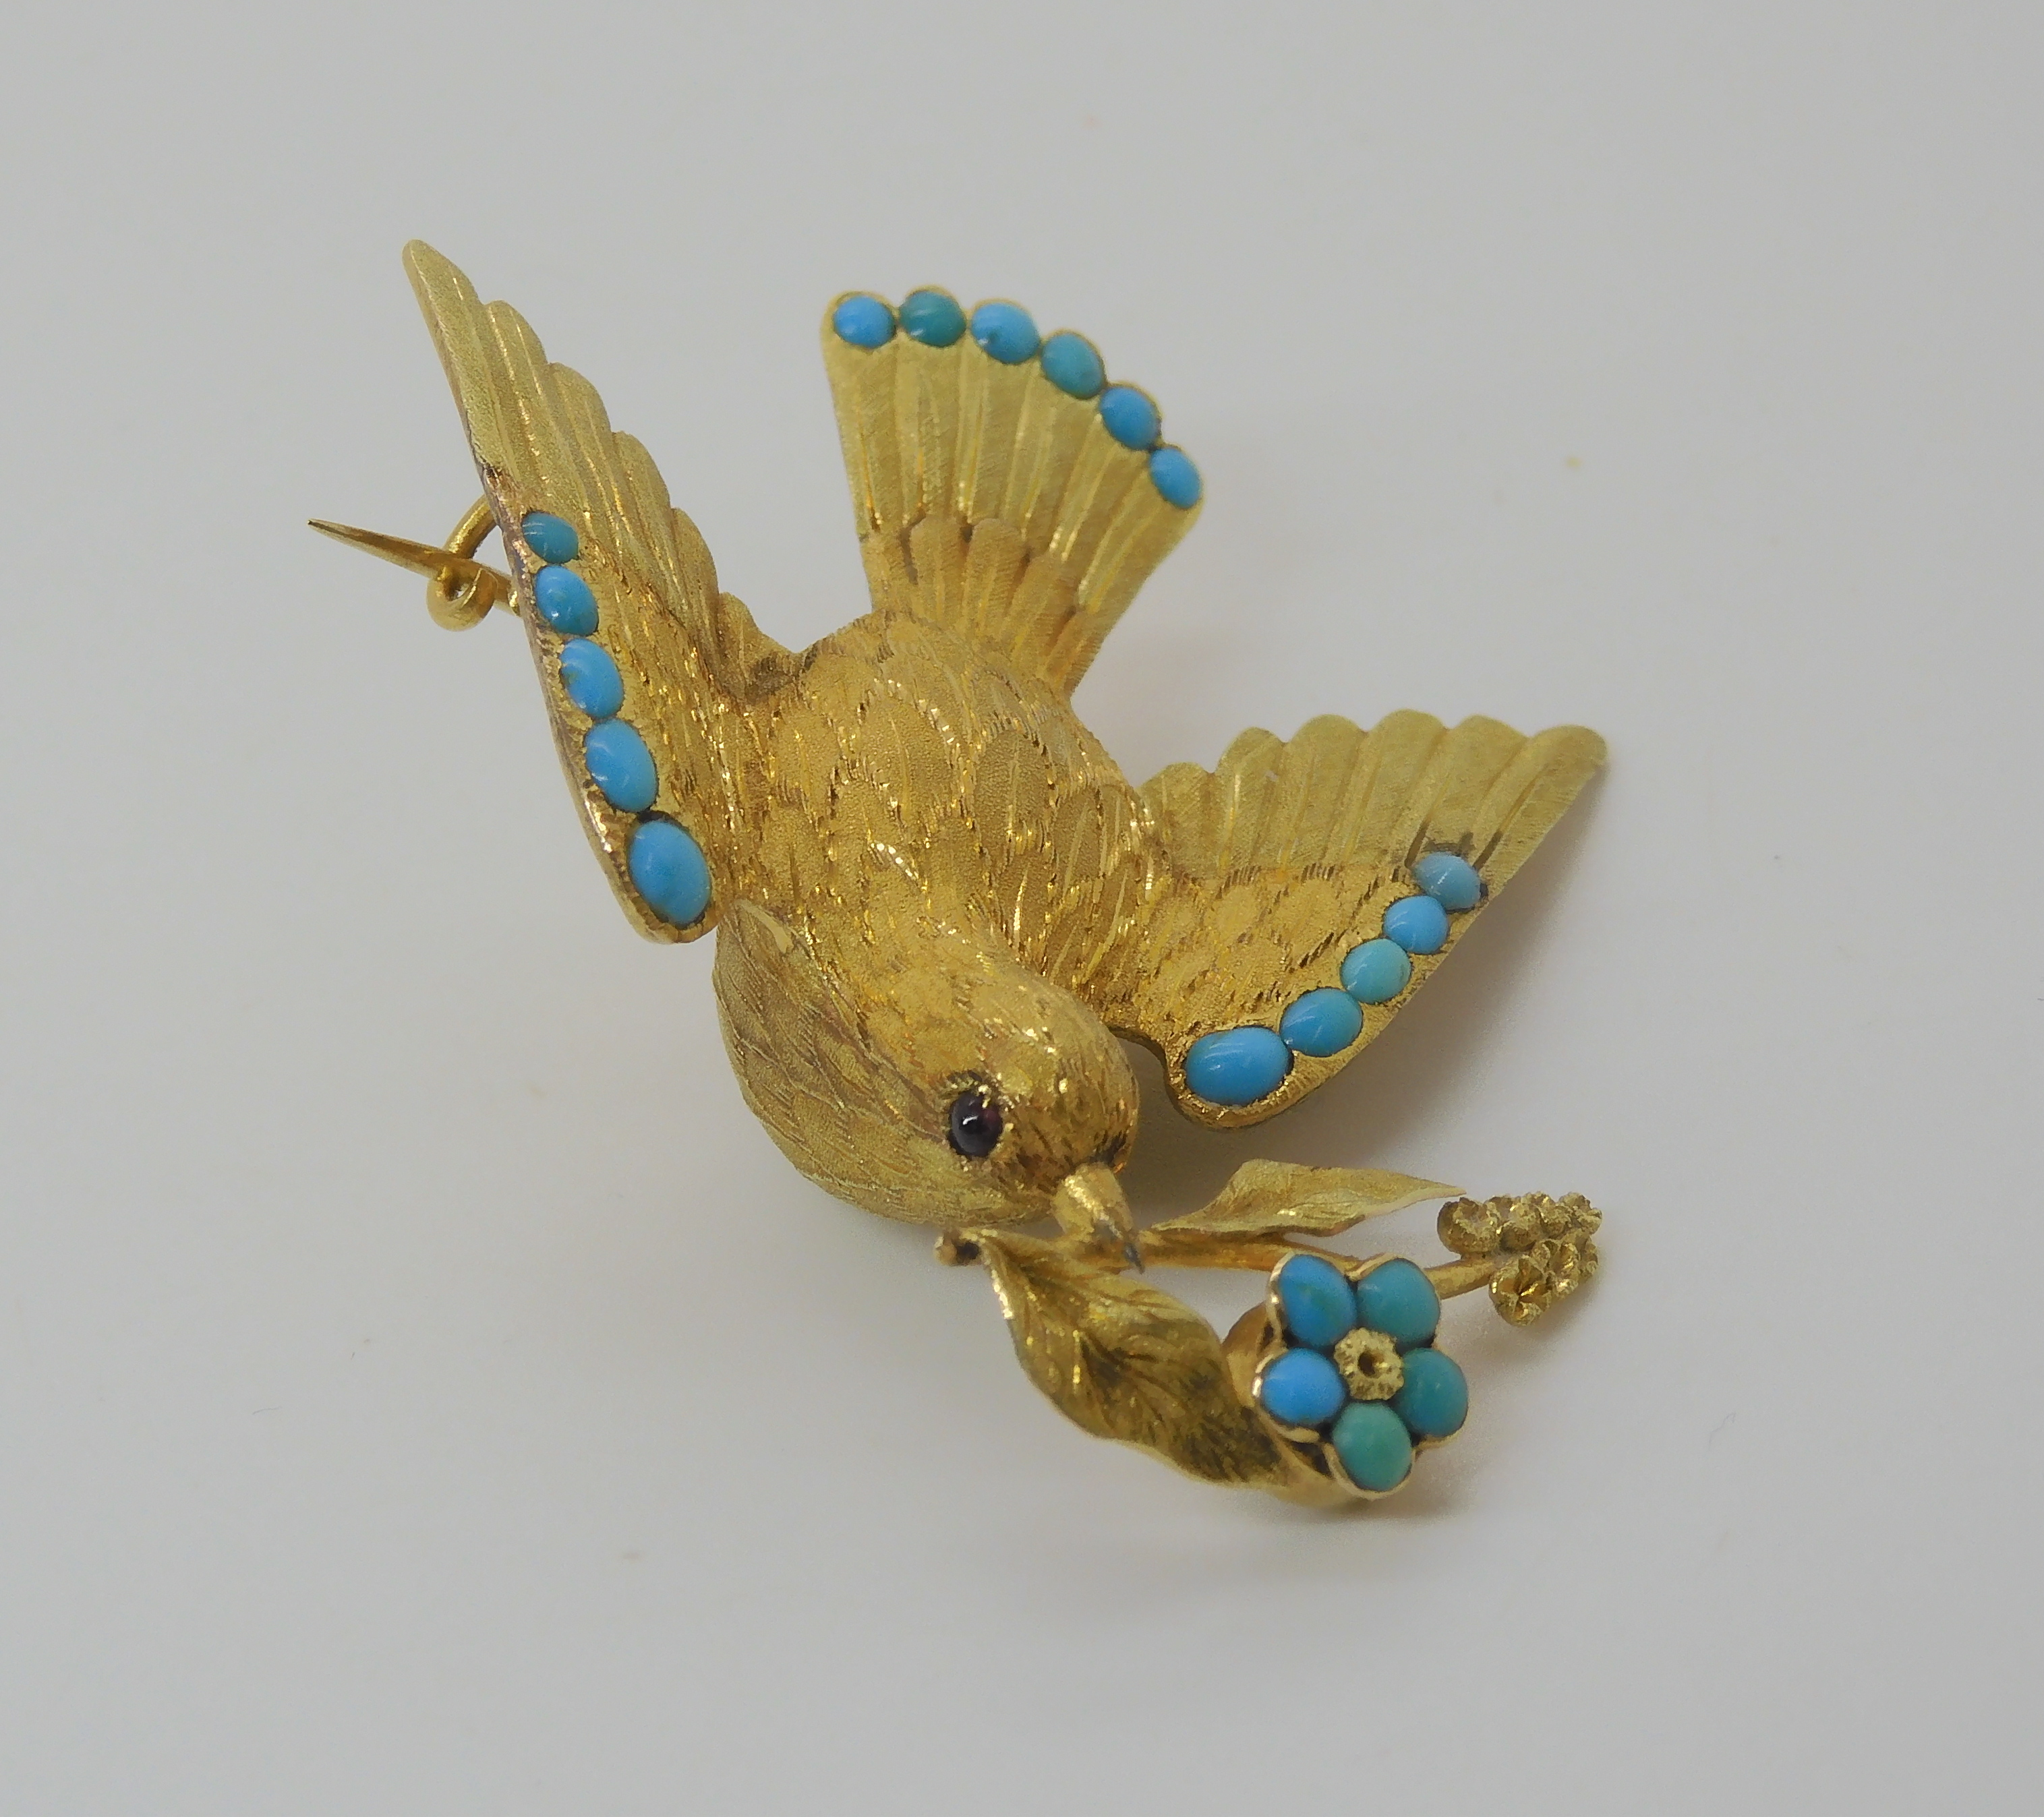 A VICTORIAN LOCKET BACK DOVE BROOCH SET WITH TURQUOISE craftsman made in yellow metal, with